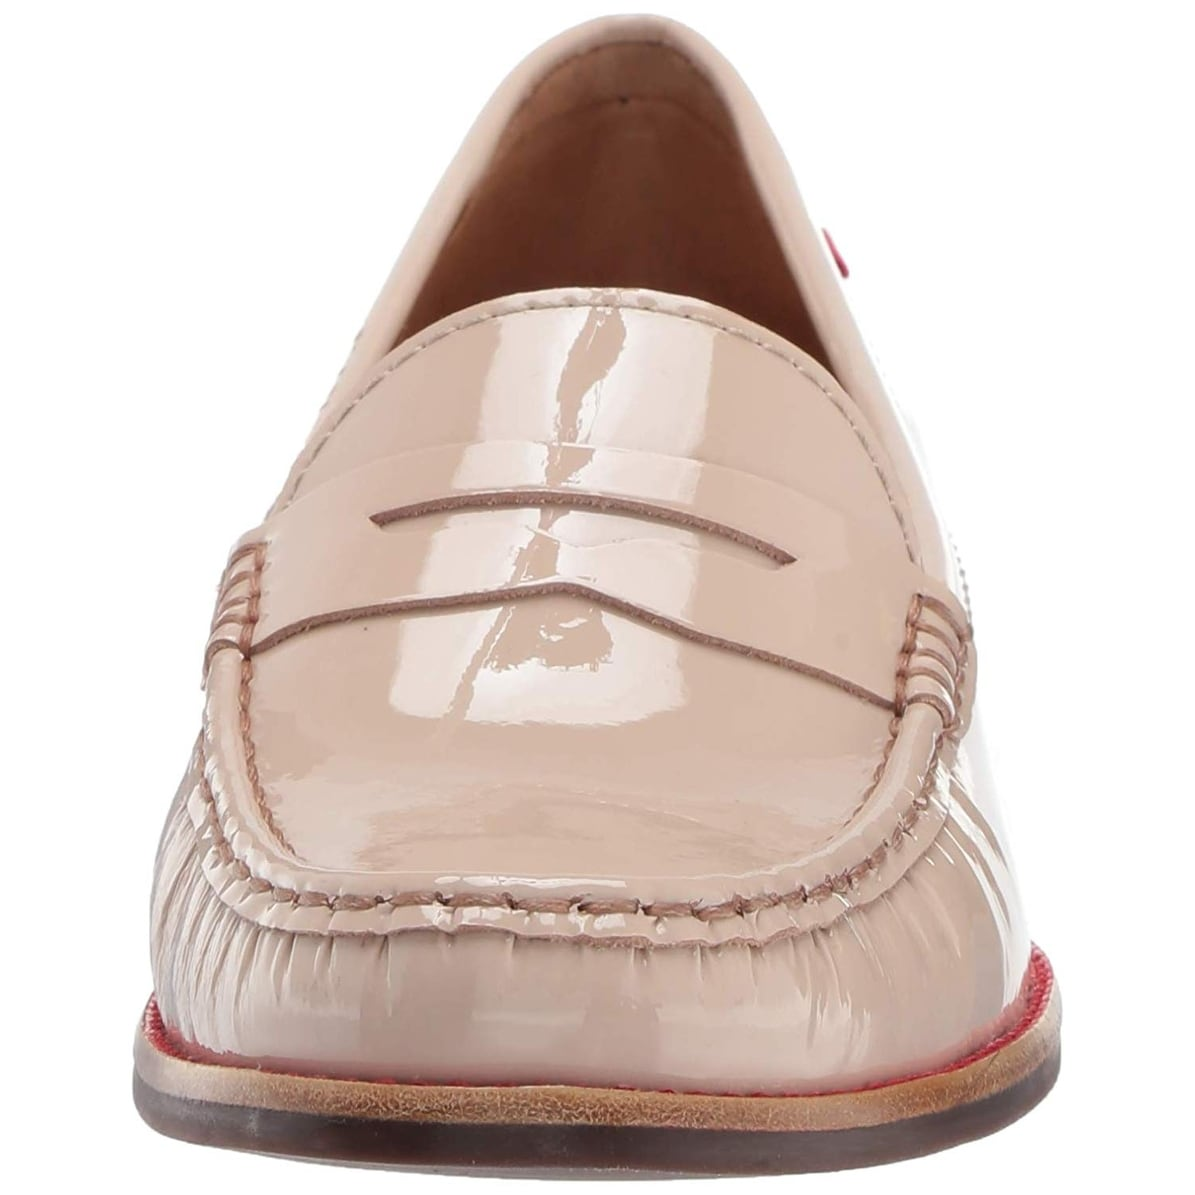 fa7df484692 Shop Marc Joseph New York Womens East Village Leather Closed Toe Loafers -  Free Shipping On Orders Over  45 - Overstock.com - 26262855